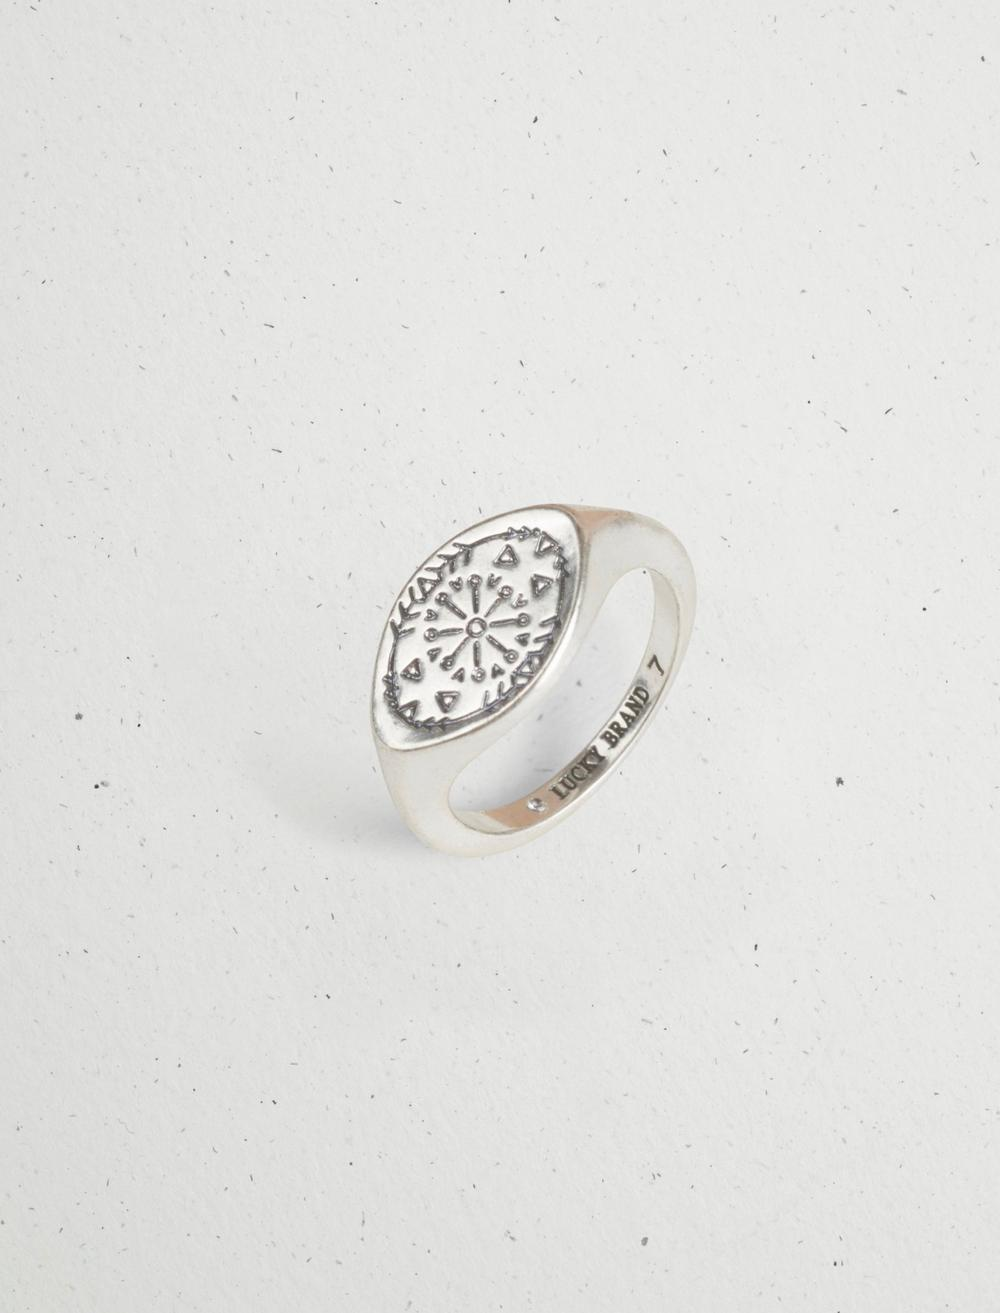 ETCHED SIGNET RING, image 2